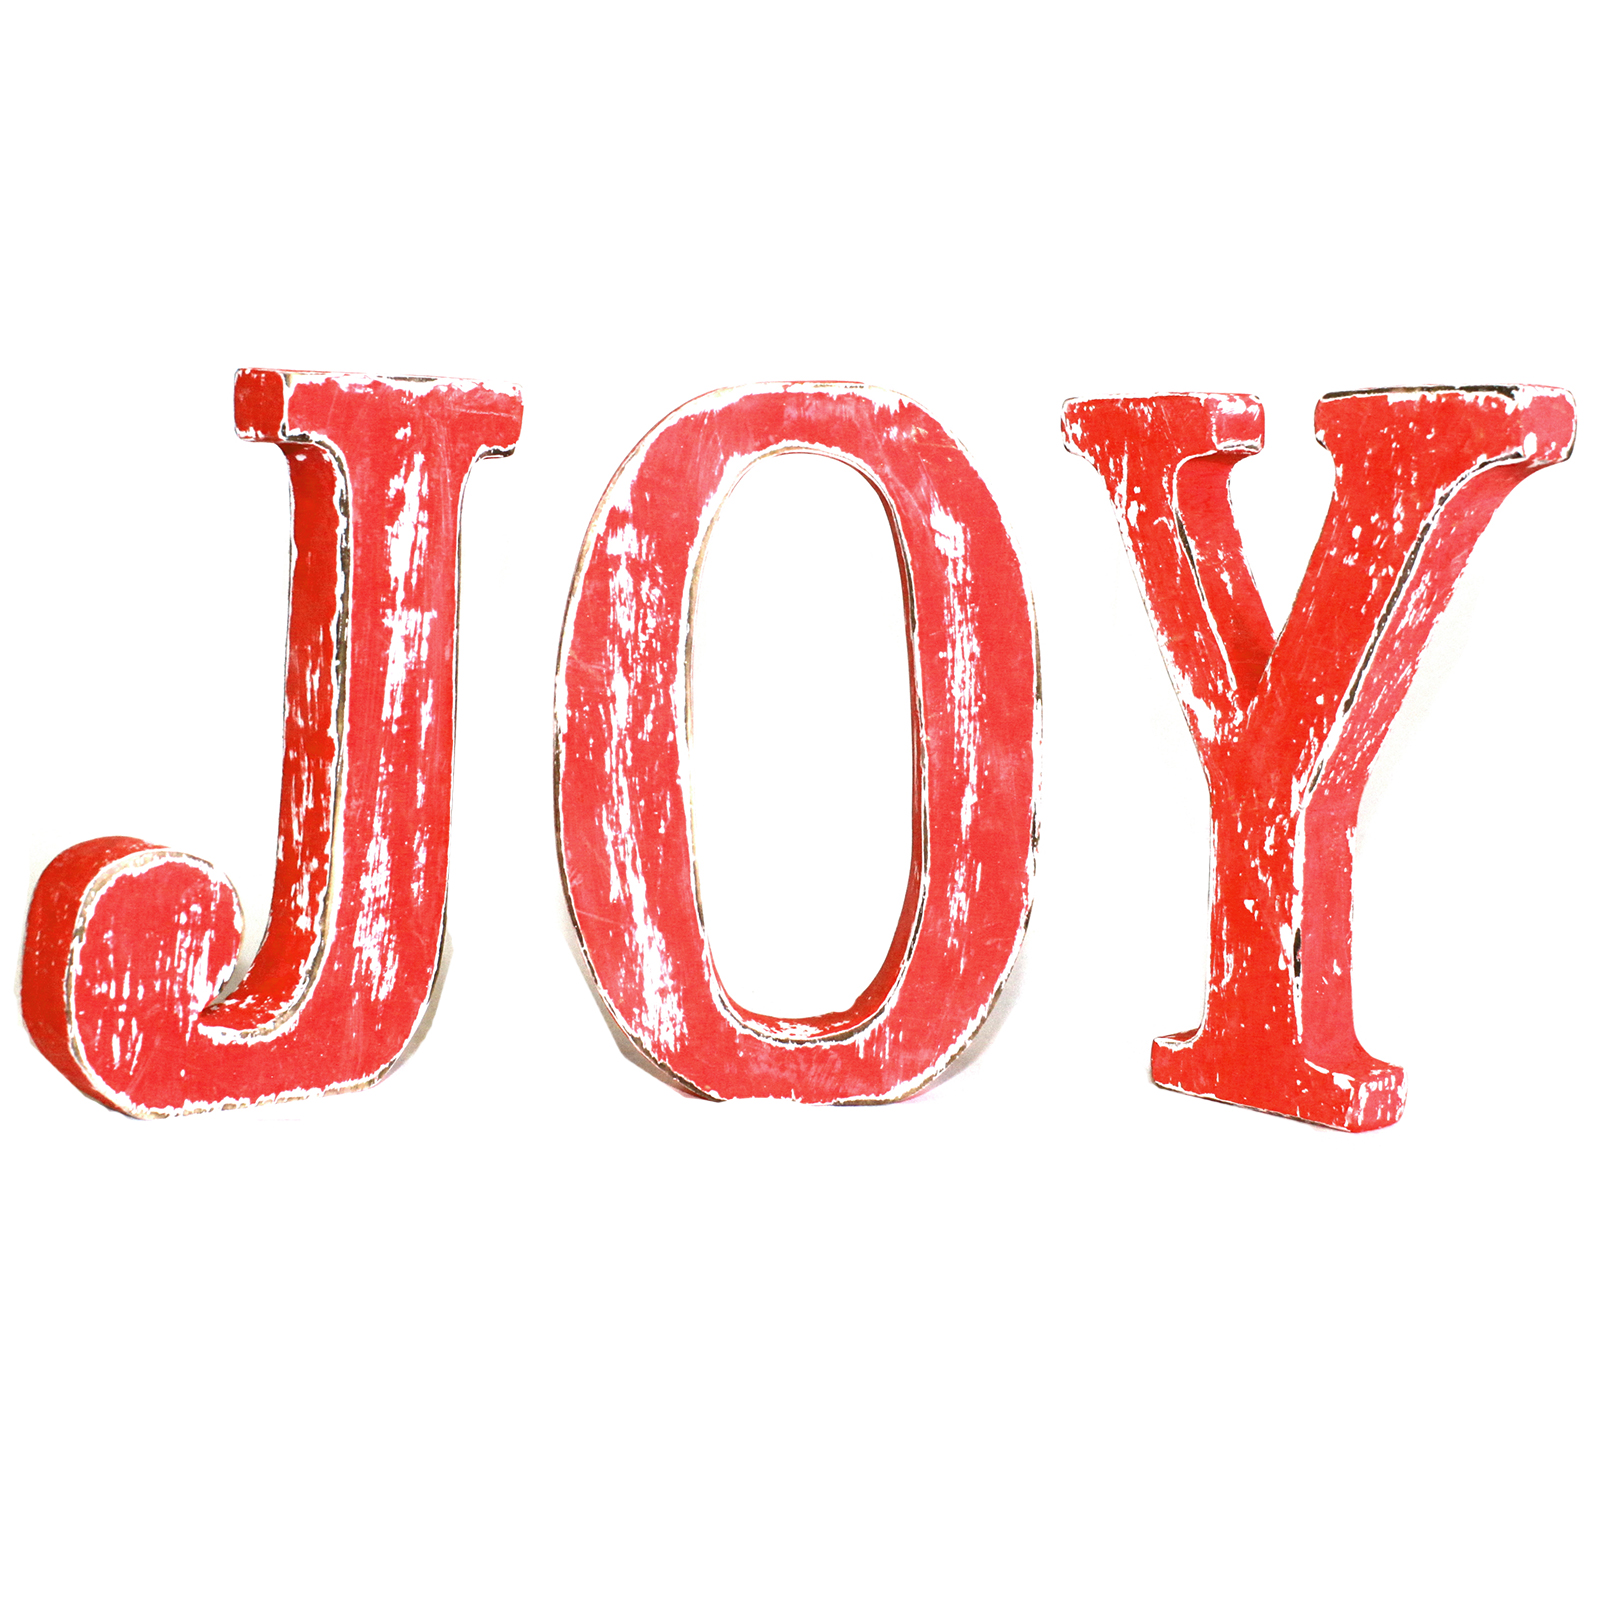 Shabby Chic Letters Red Wash - JOY